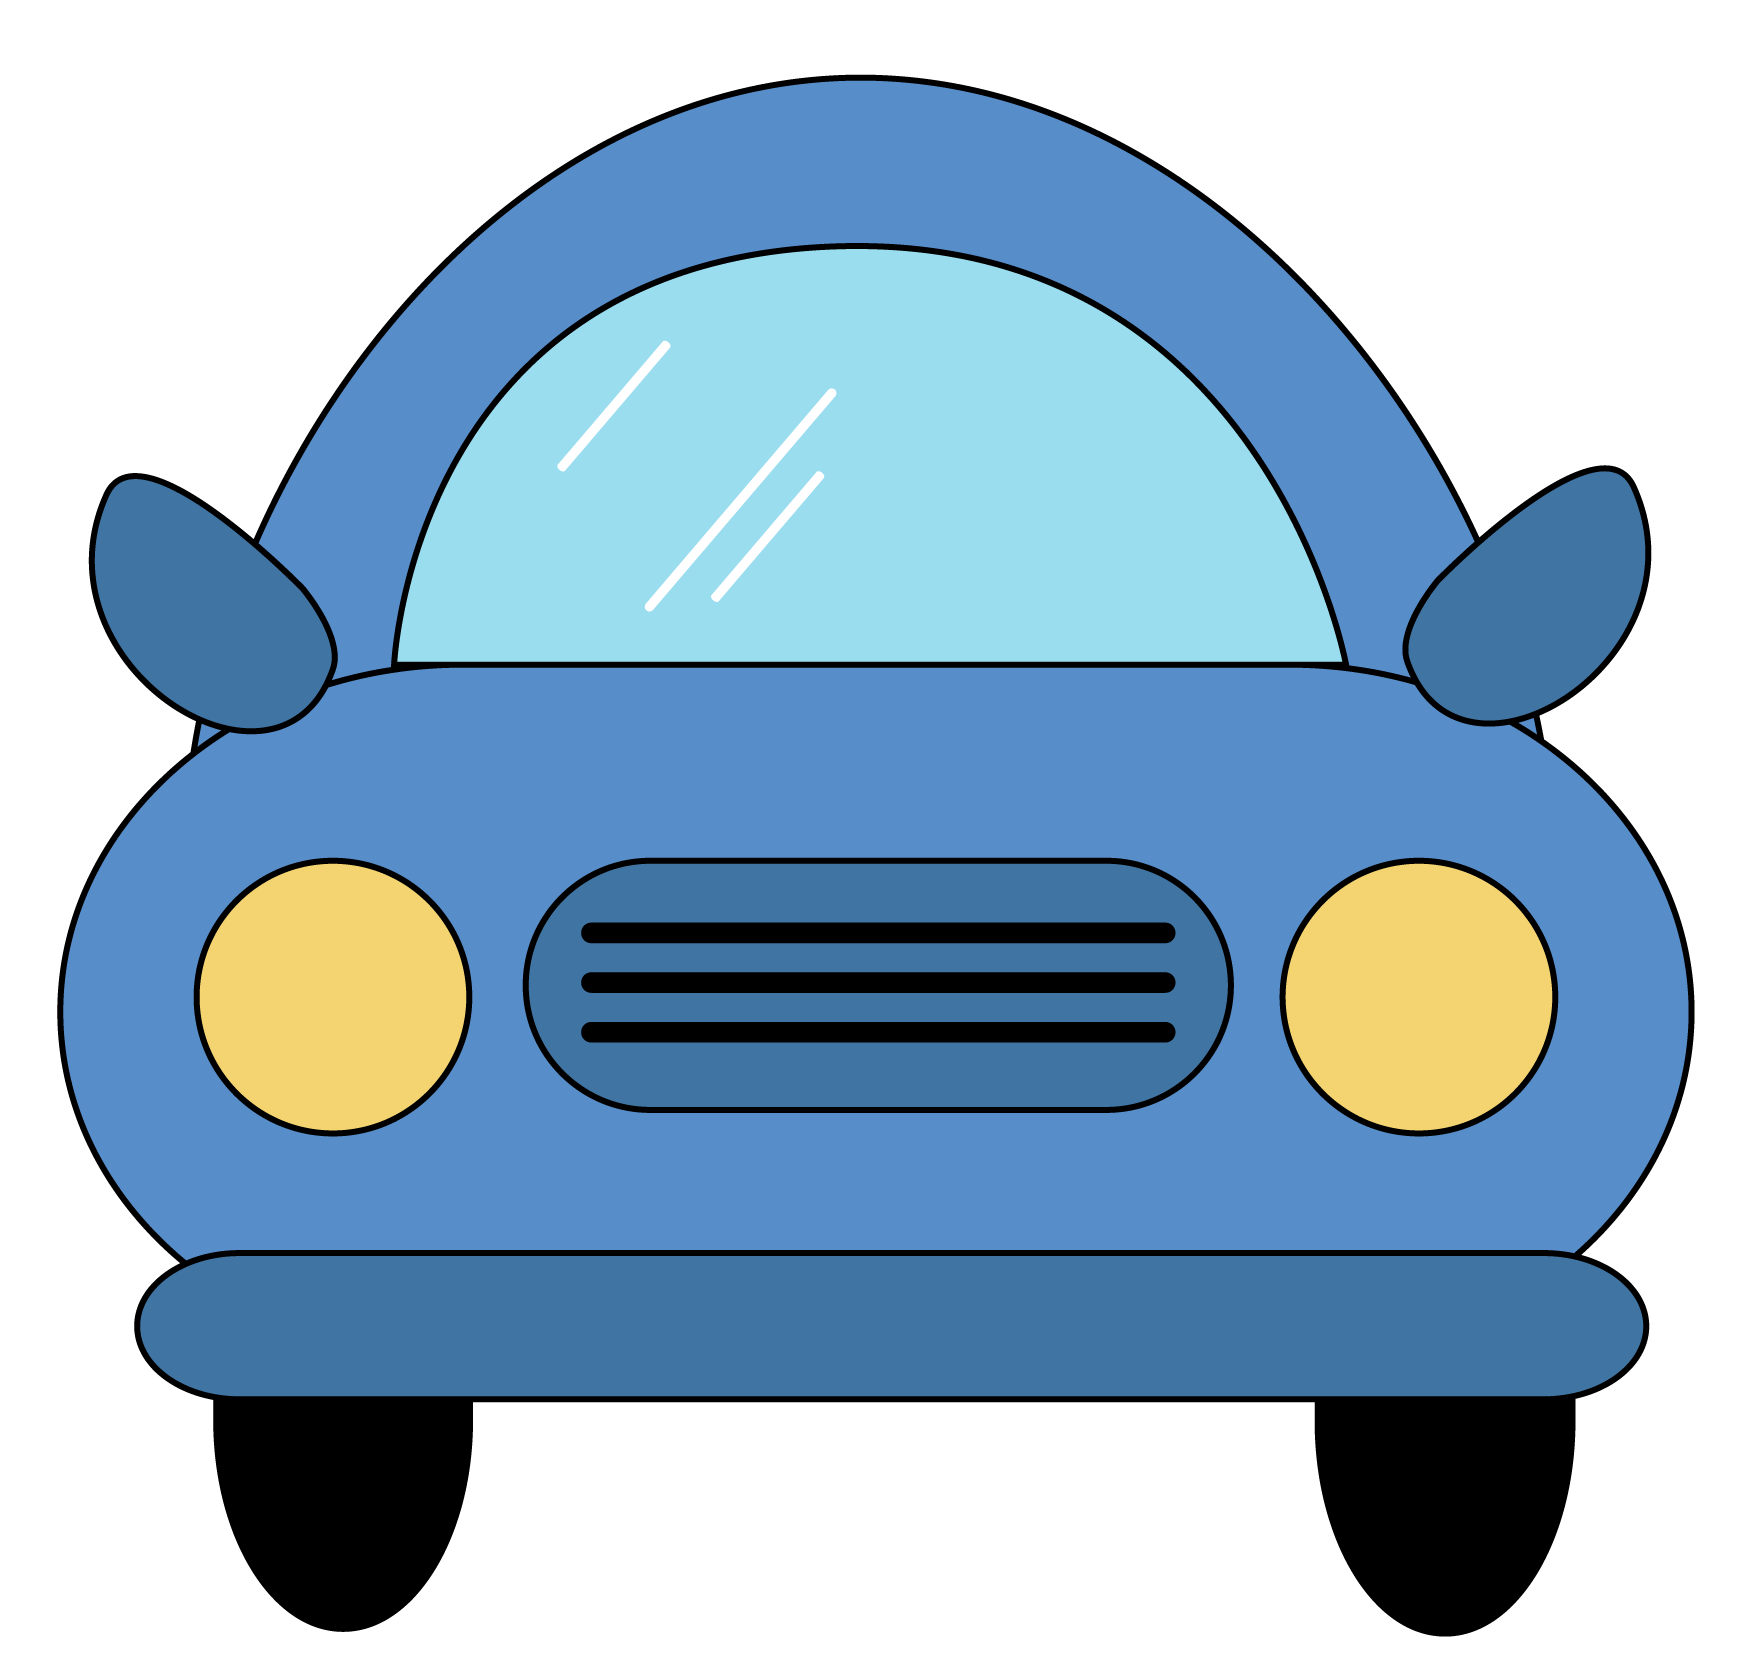 Free animated car clipart clipart transparent download 28+ Collection of Front View Of A Car Clipart | High quality, free ... clipart transparent download